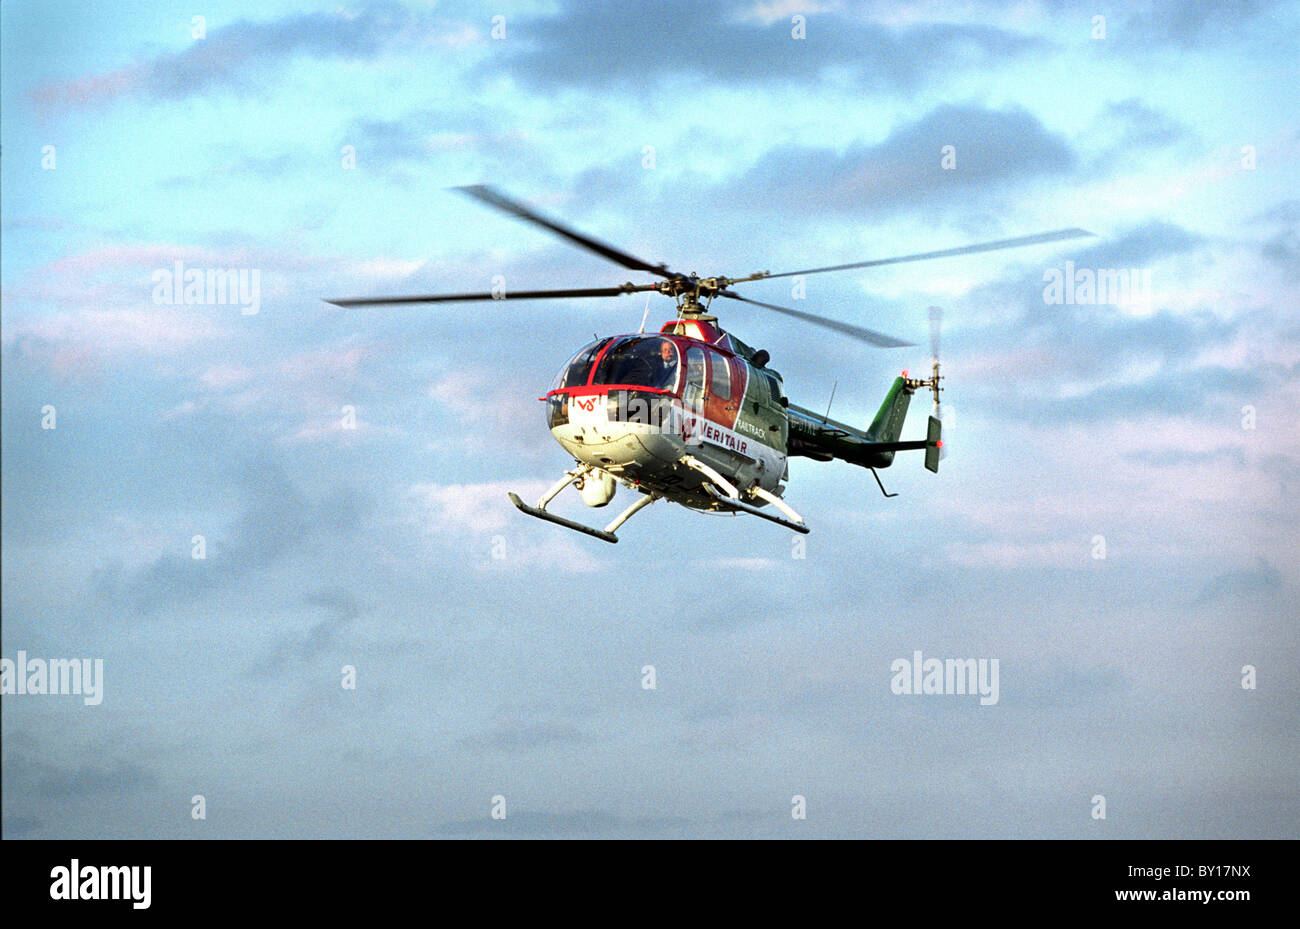 Helicopter, Cardiff Heli-Port. - Stock Image